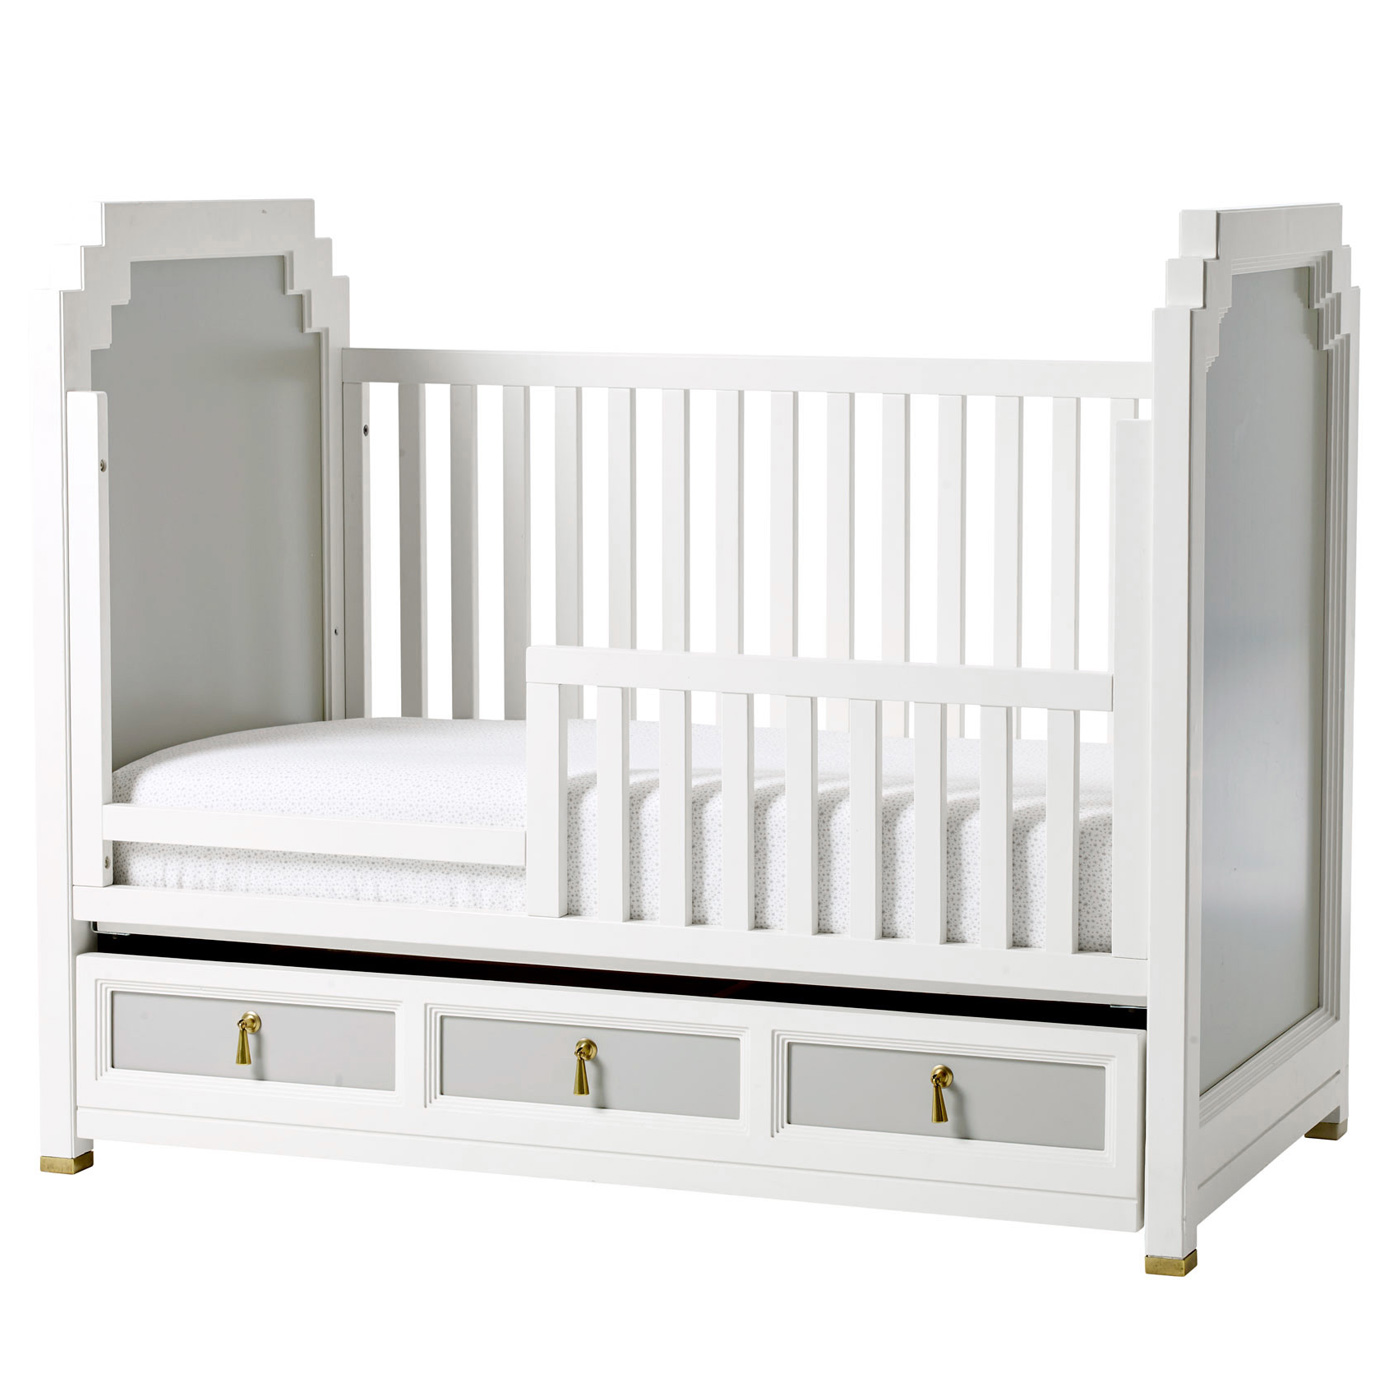 DwellStudio Vanderbilt Crib in French Gray FREE SHIPPING